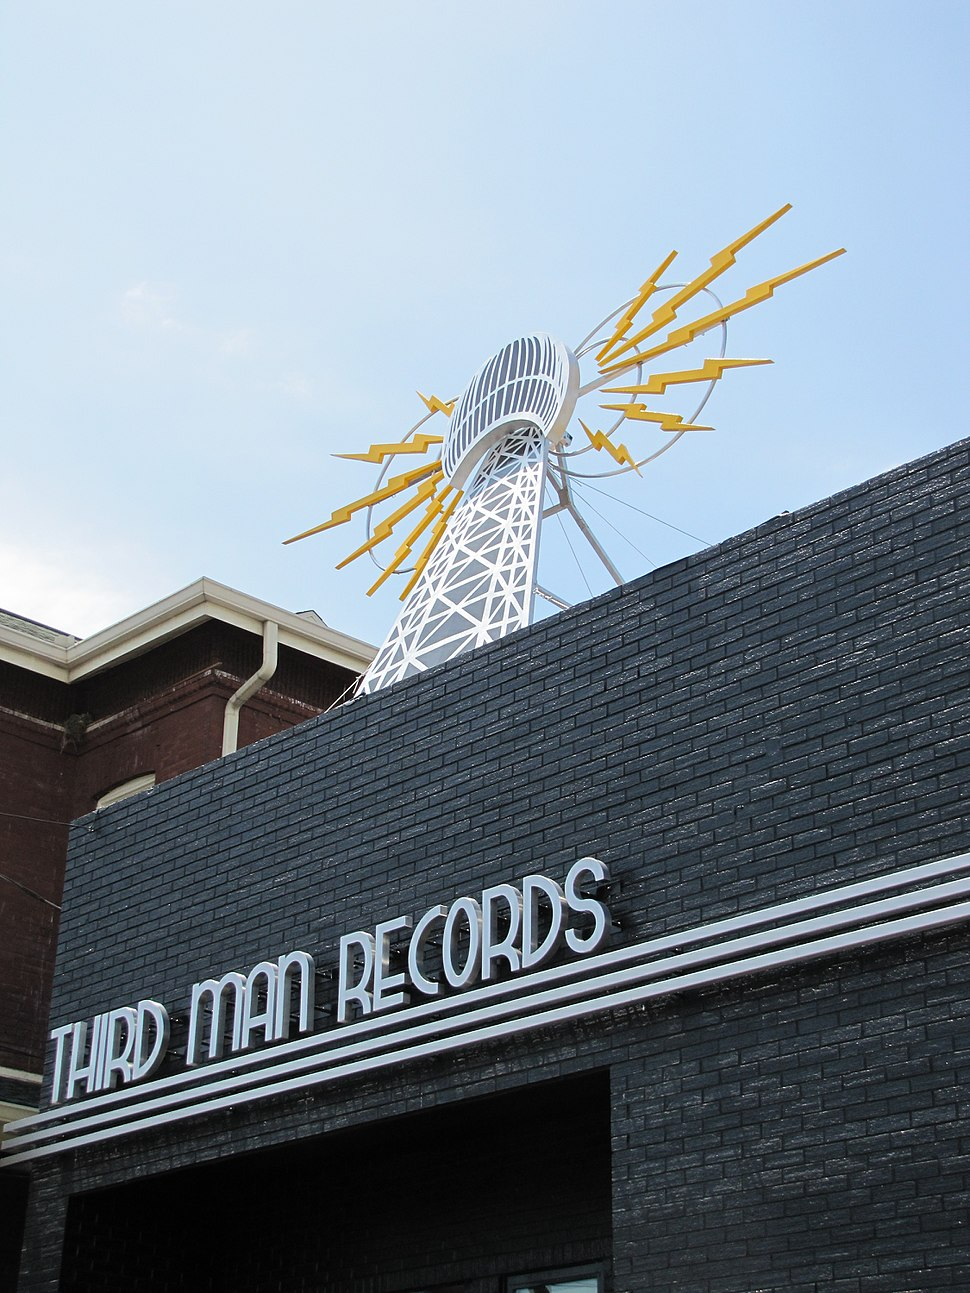 Third Man Records facade